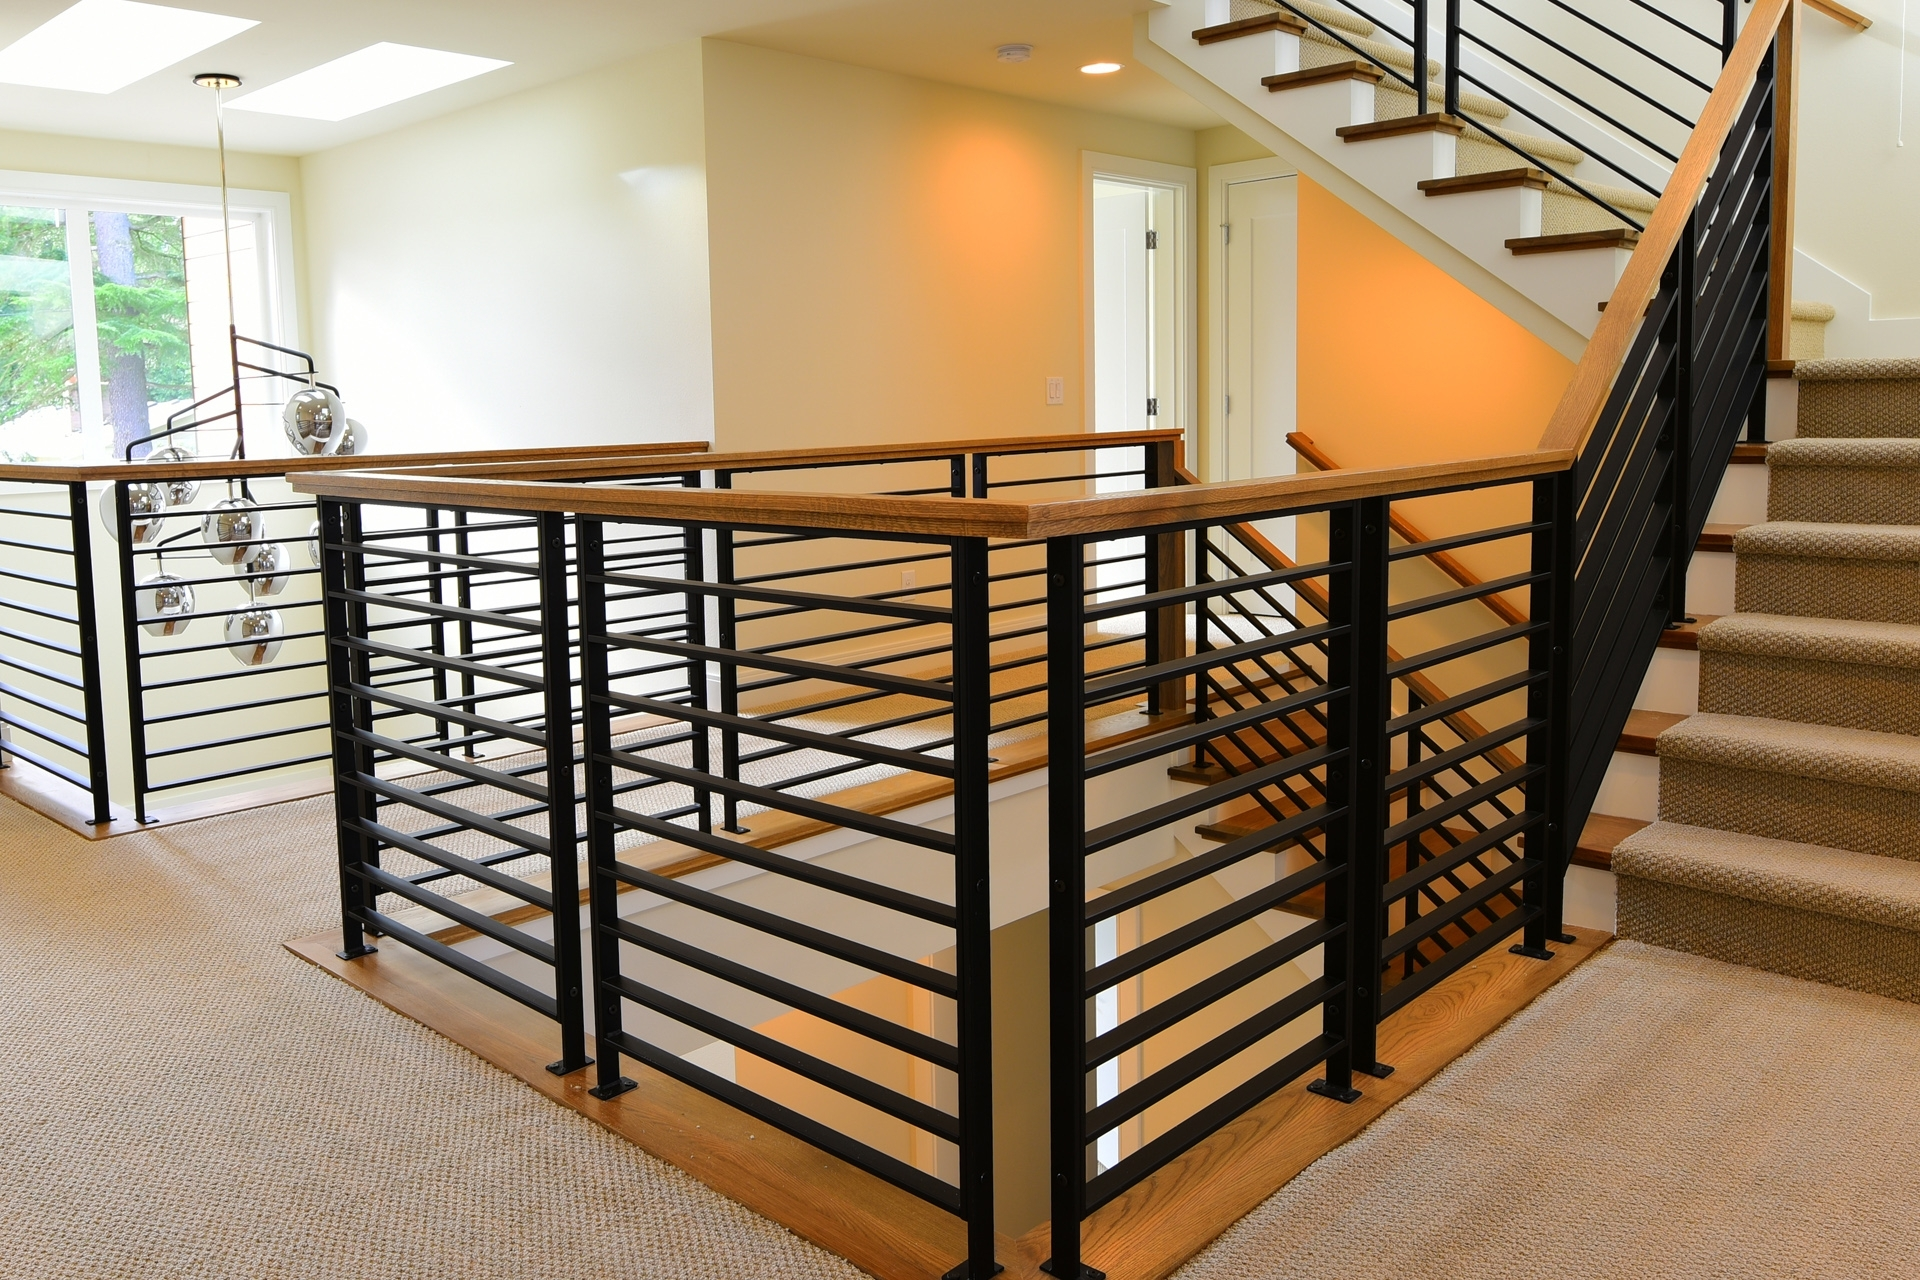 Stair Systems Stairs Stair Parts Newels Balusters And | Shaker Style Stair Railing | White | Exterior | Loft | Farmhouse Front Door | Square